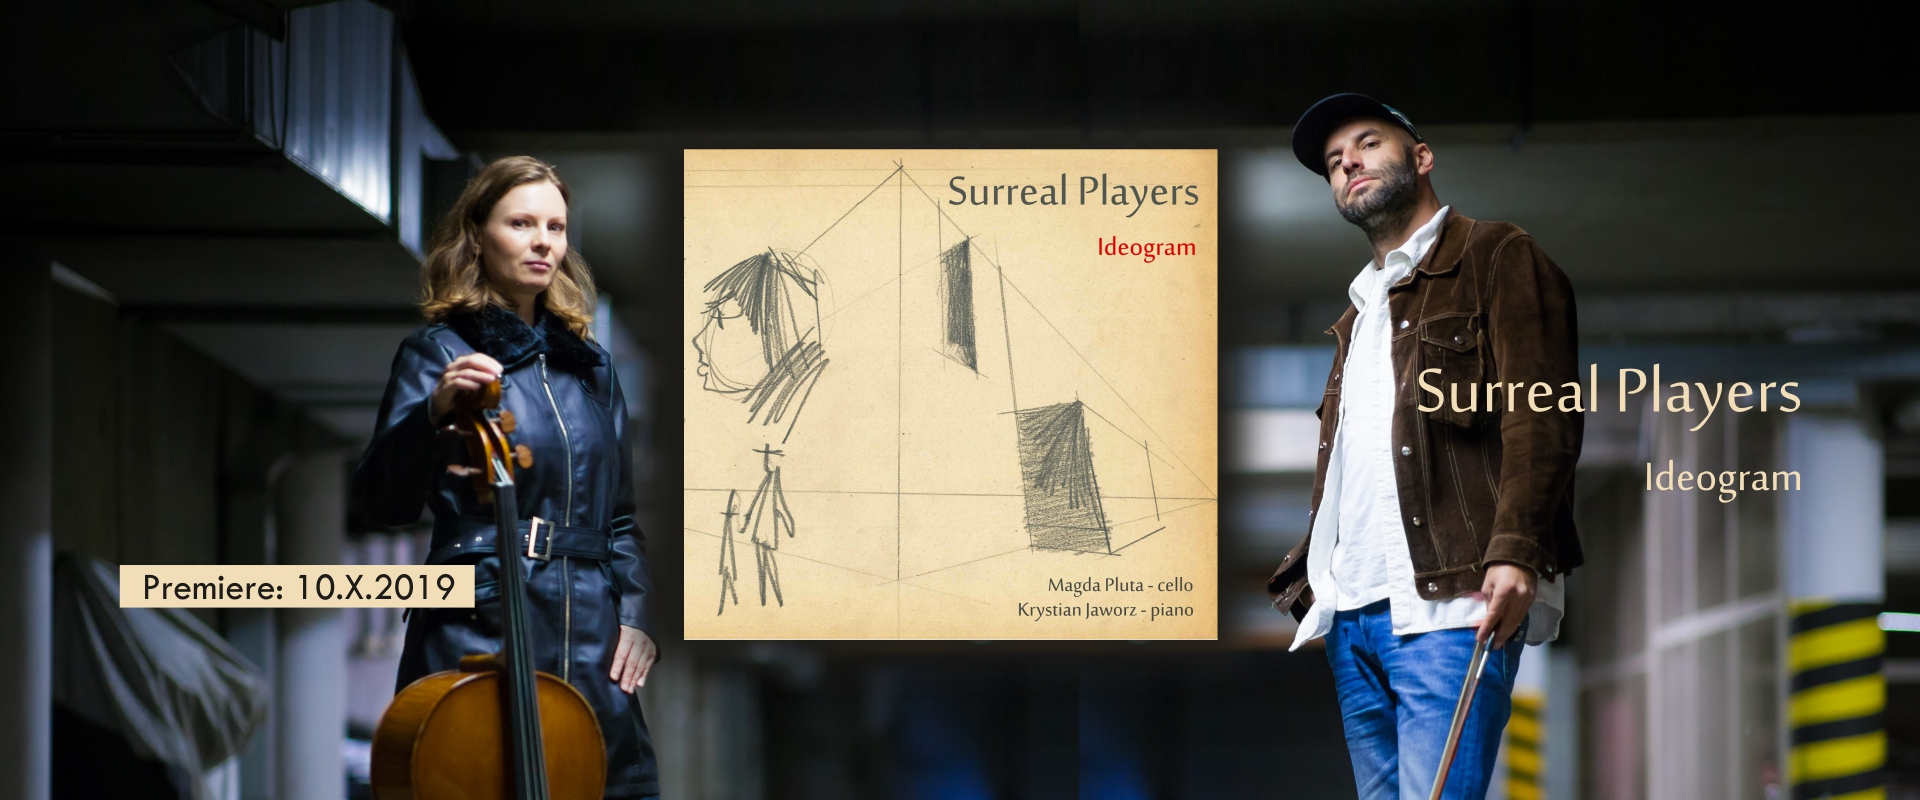 Surreal Players - Ideogram - baner